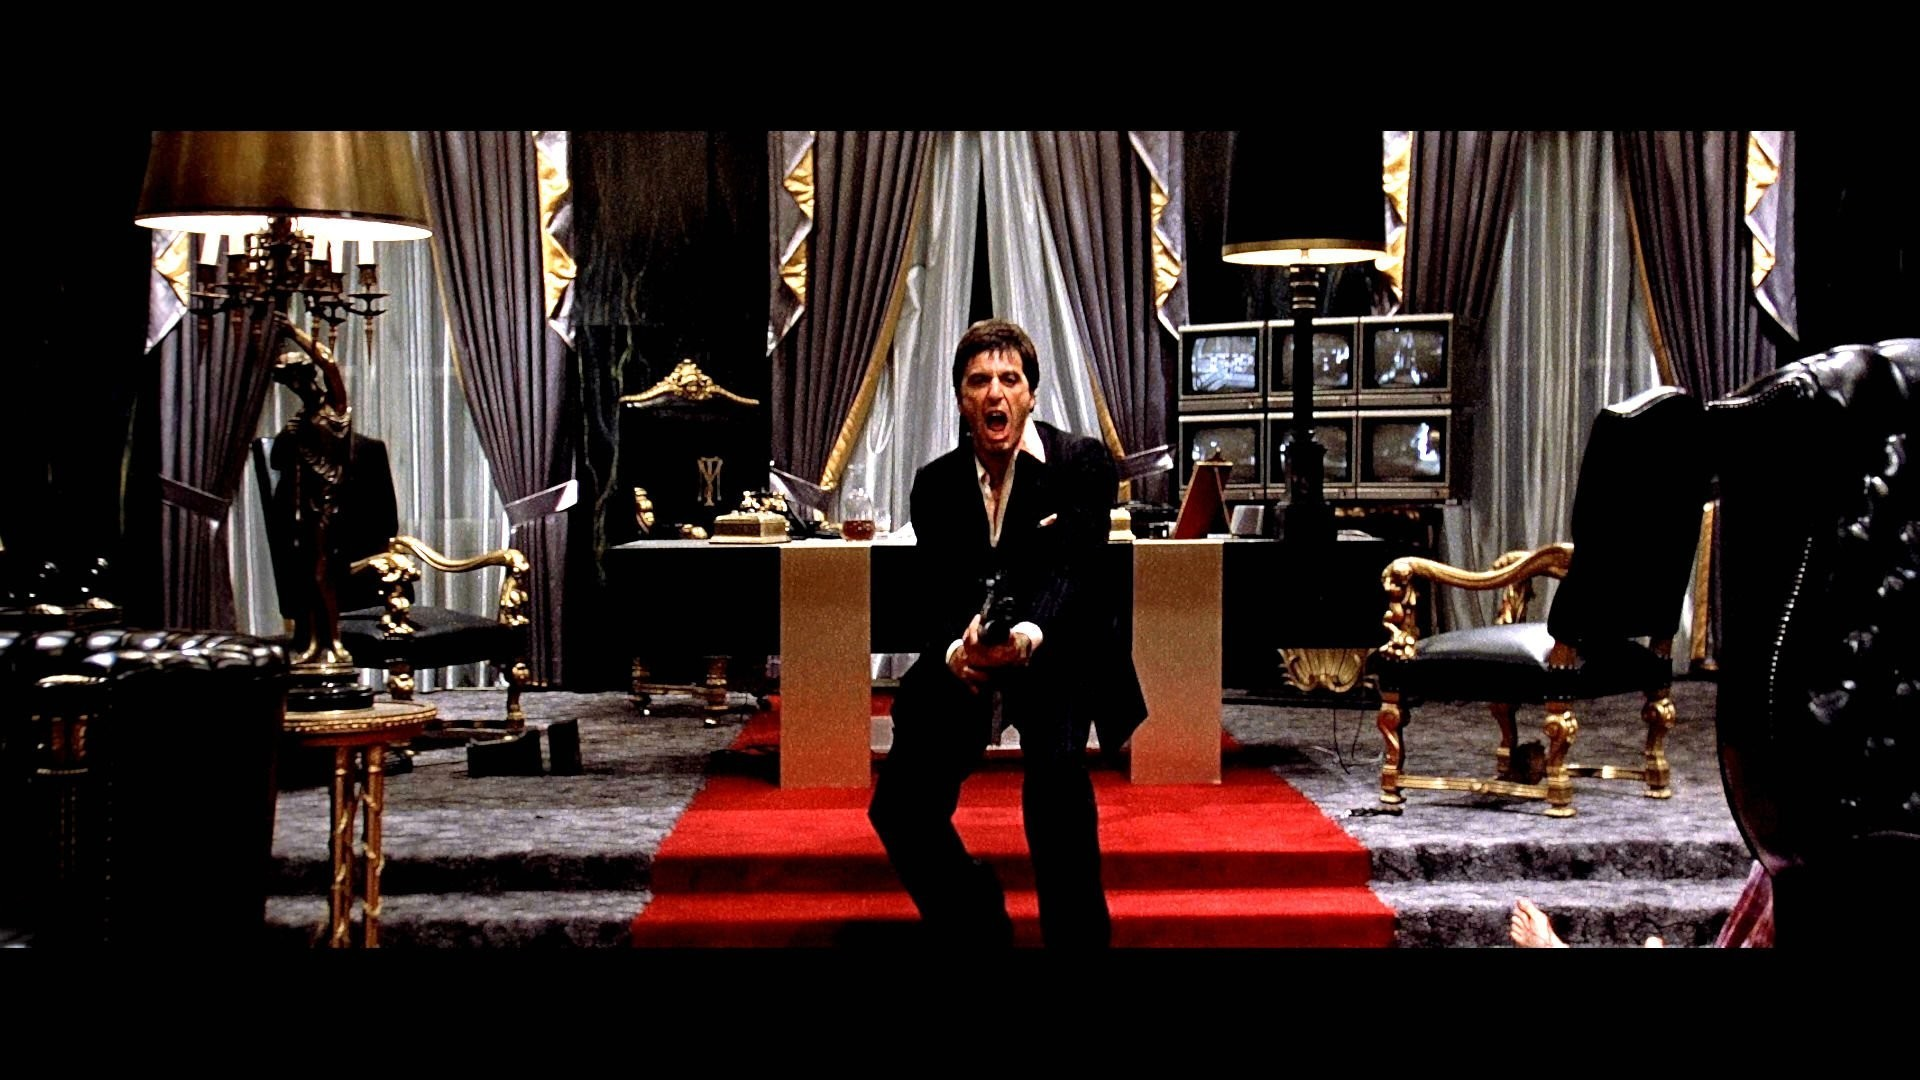 80 Scarface Hd Wallpapers on WallpaperPlay 1920x1080